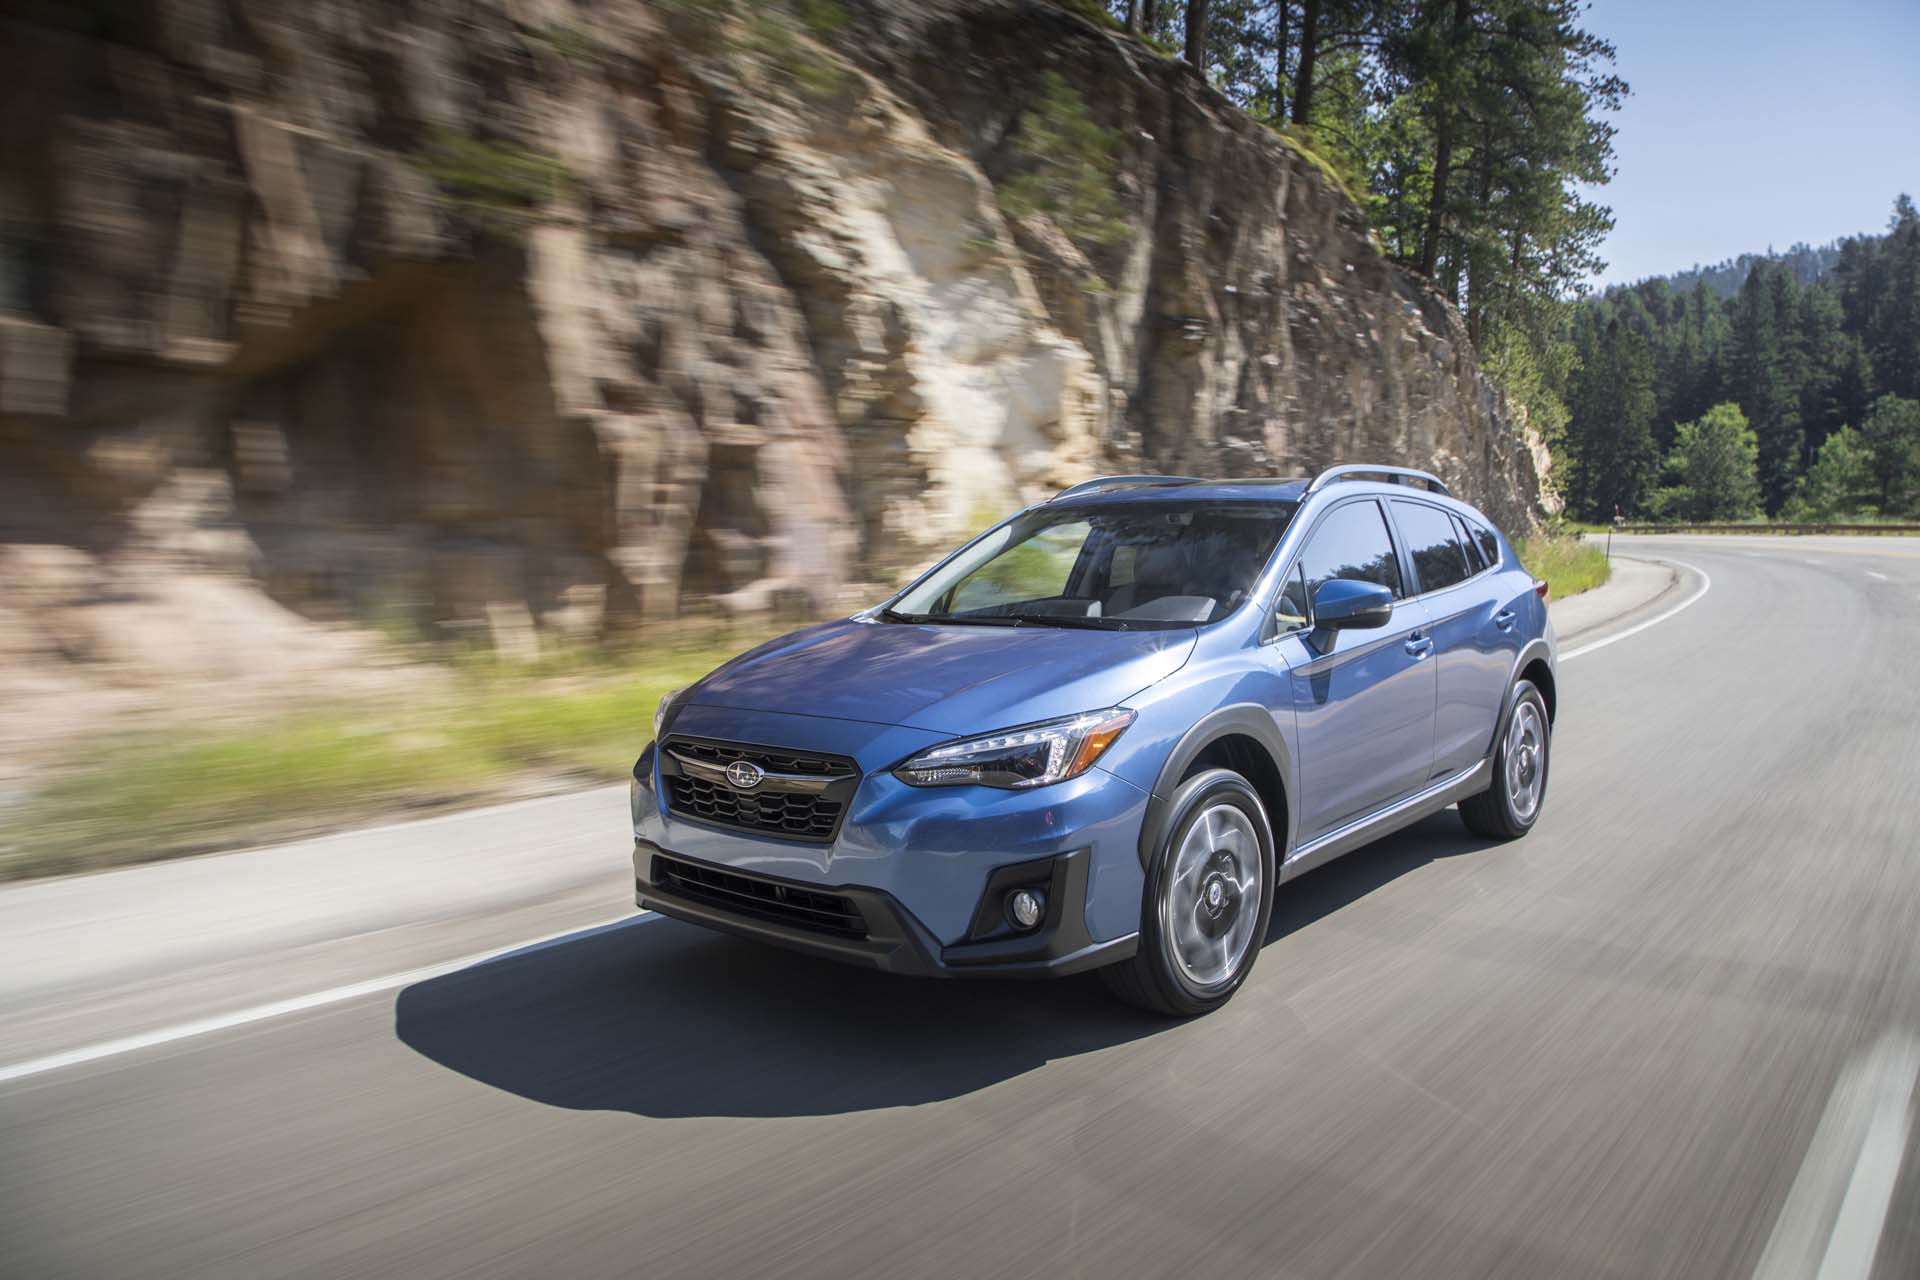 2018 subaru crosstrek styling review the car connection. Black Bedroom Furniture Sets. Home Design Ideas